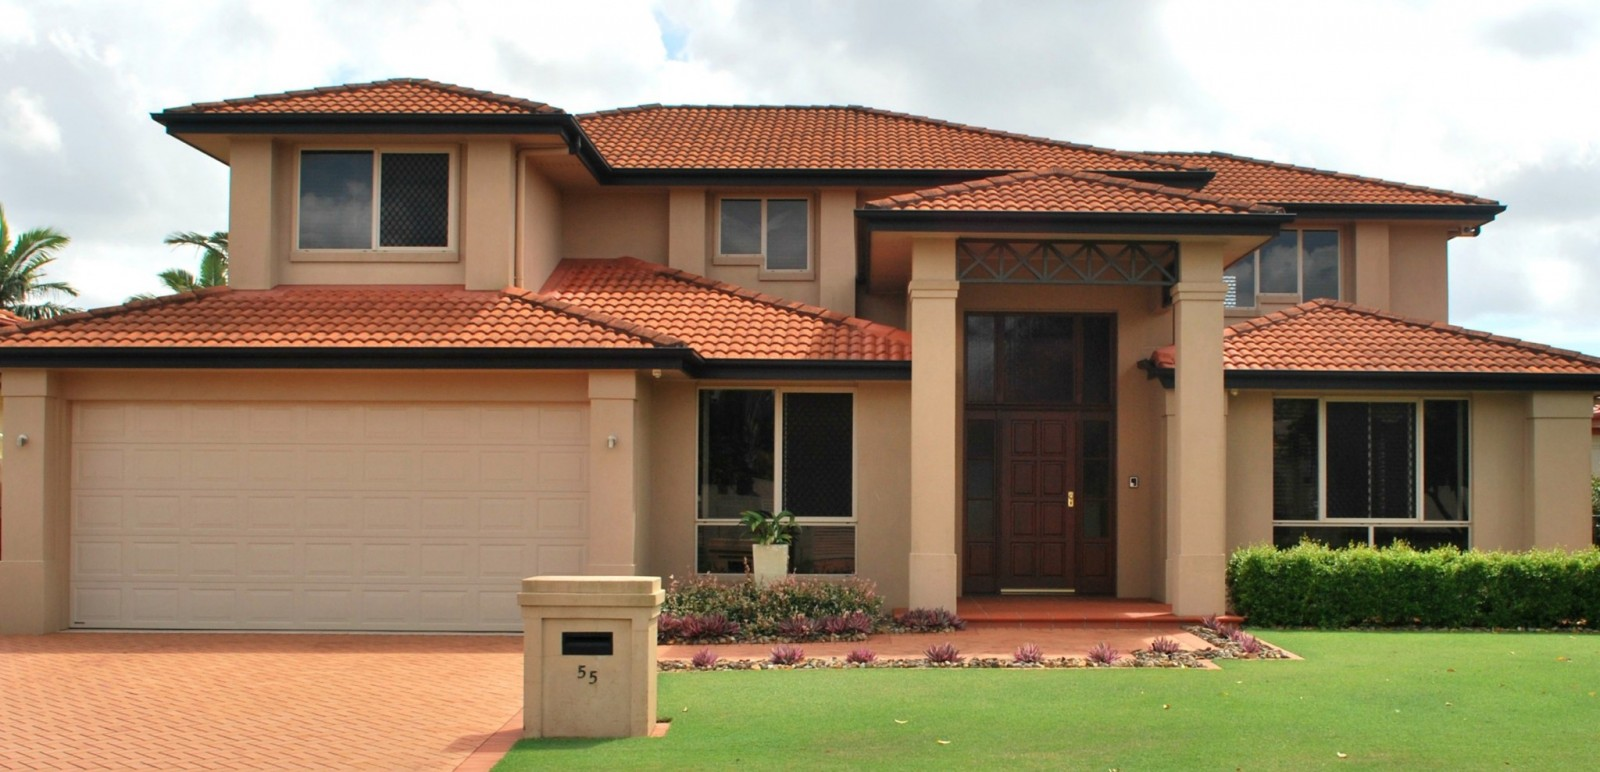 Before Roof Restoration Brisbane - Carindale